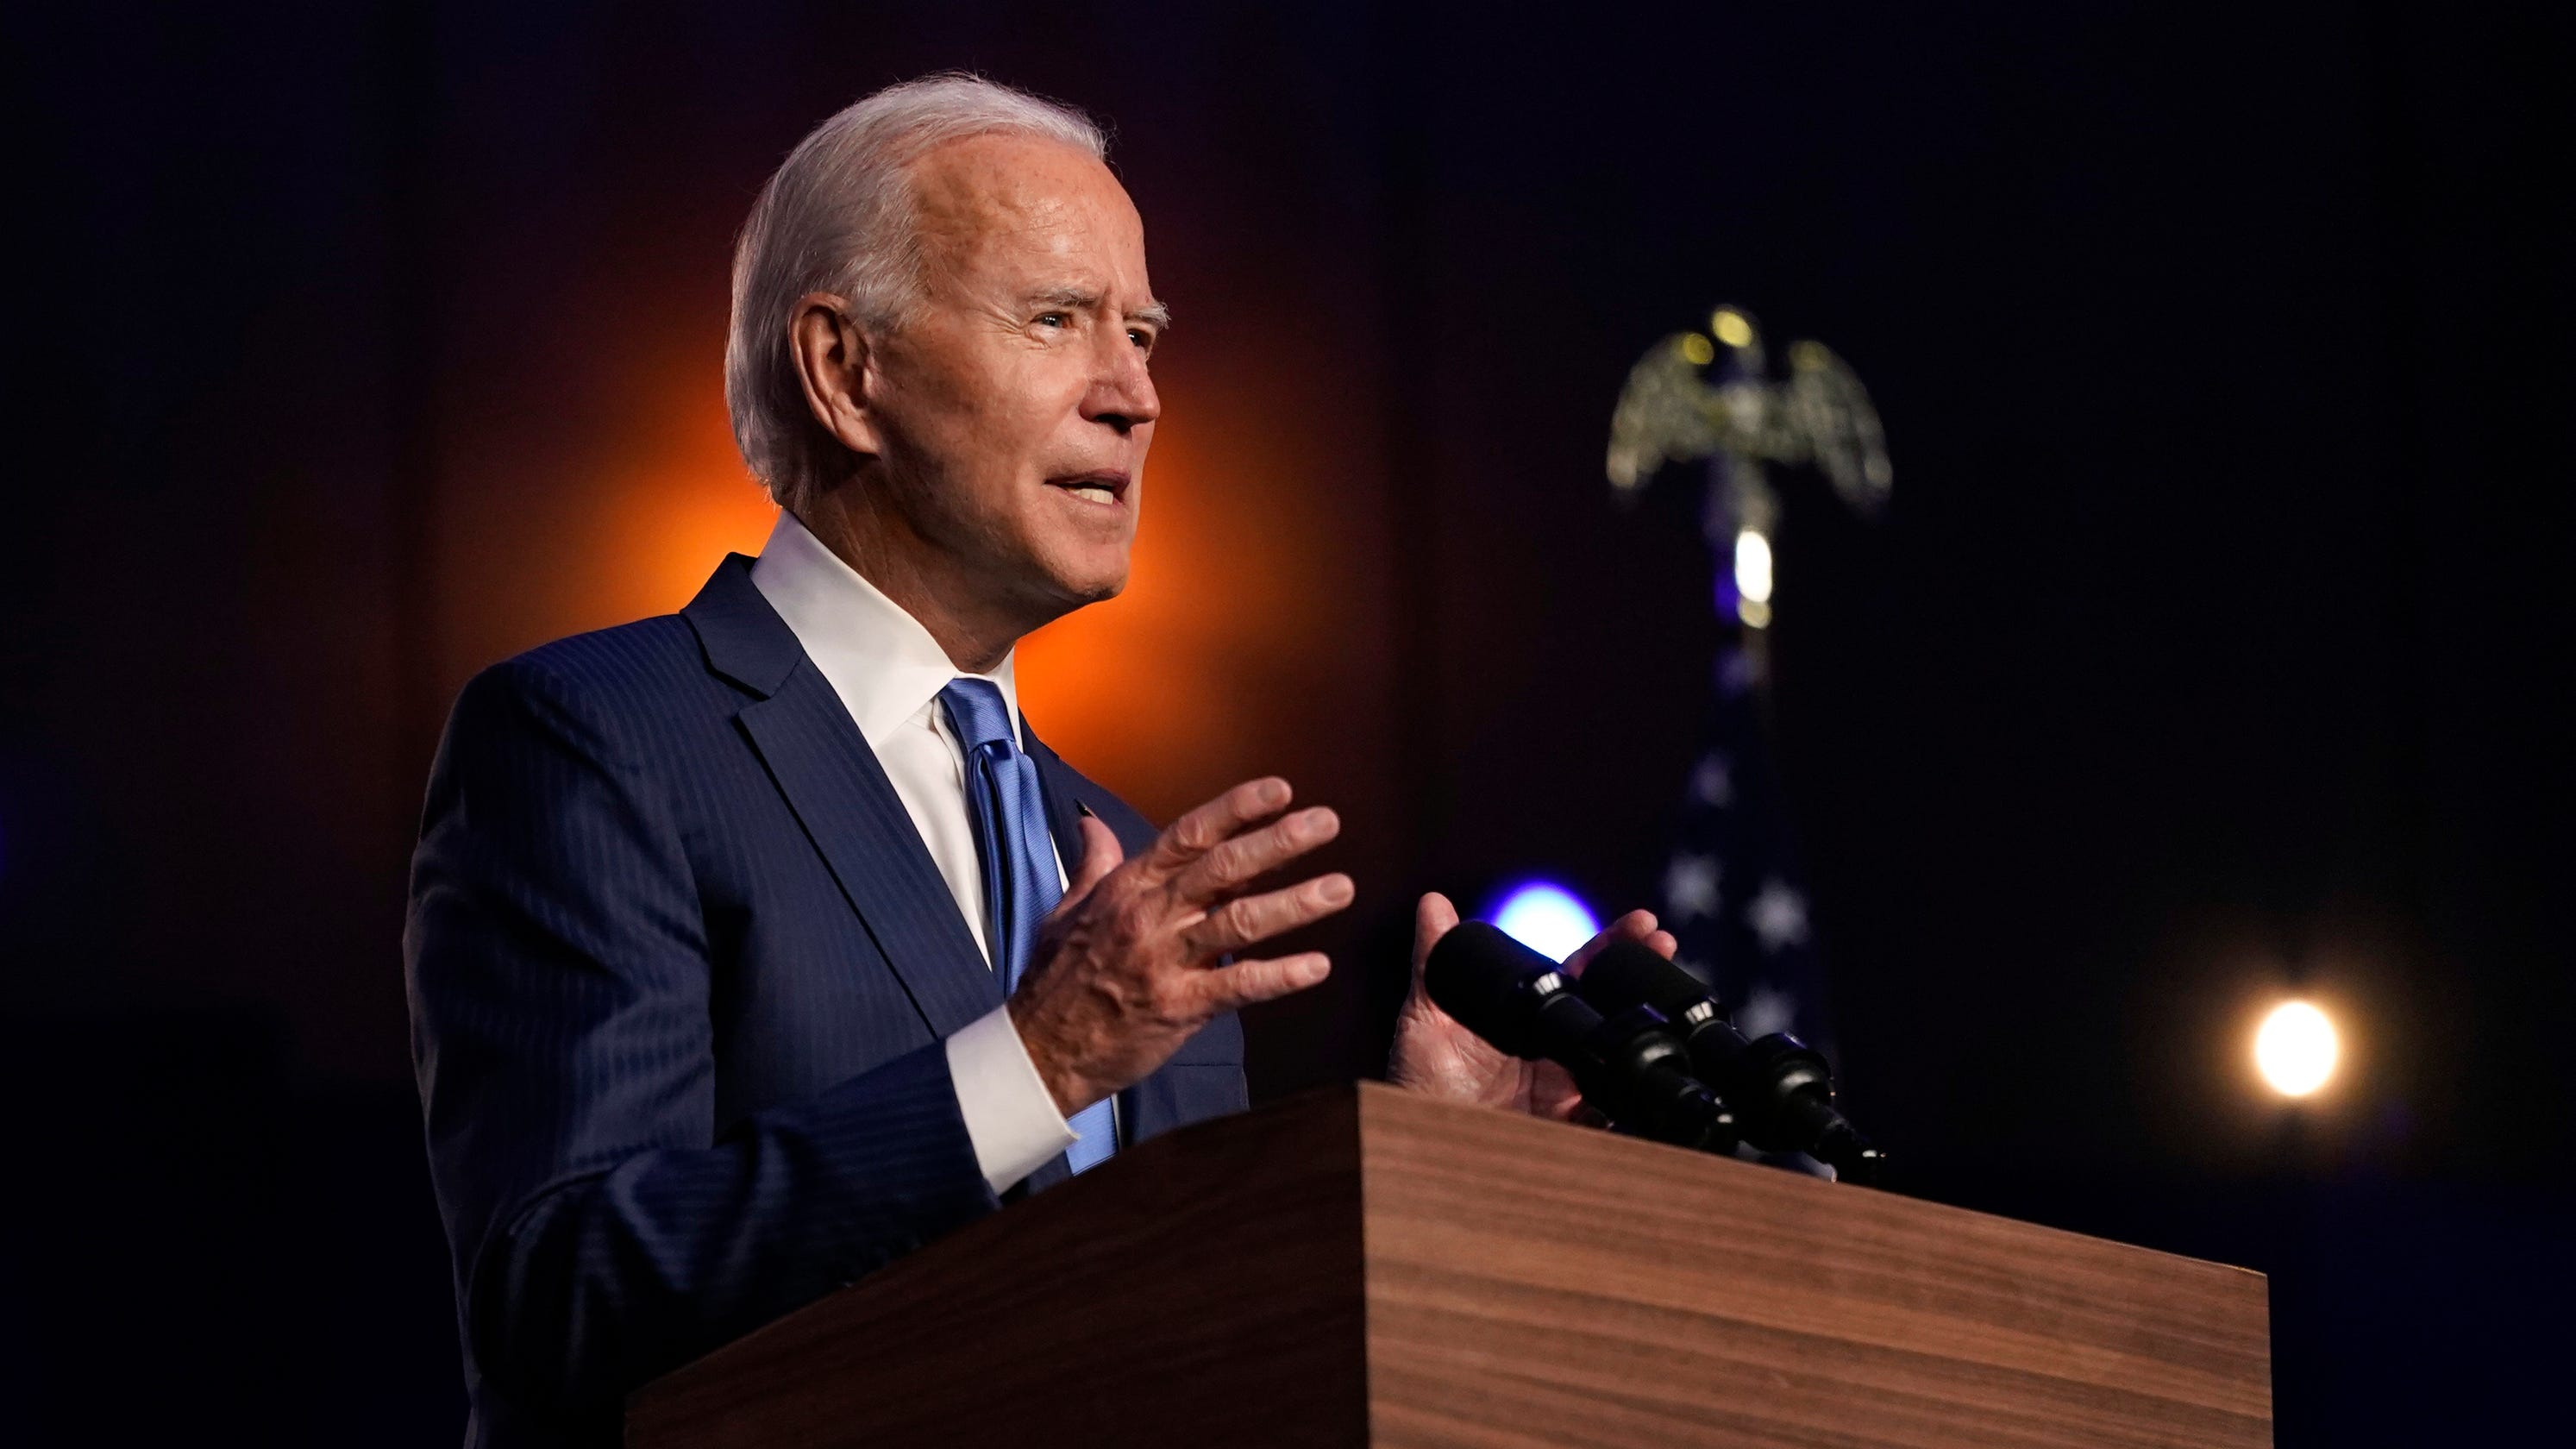 Biden made his first administration hire this week, with others on the horizon. Here are some top contenders.